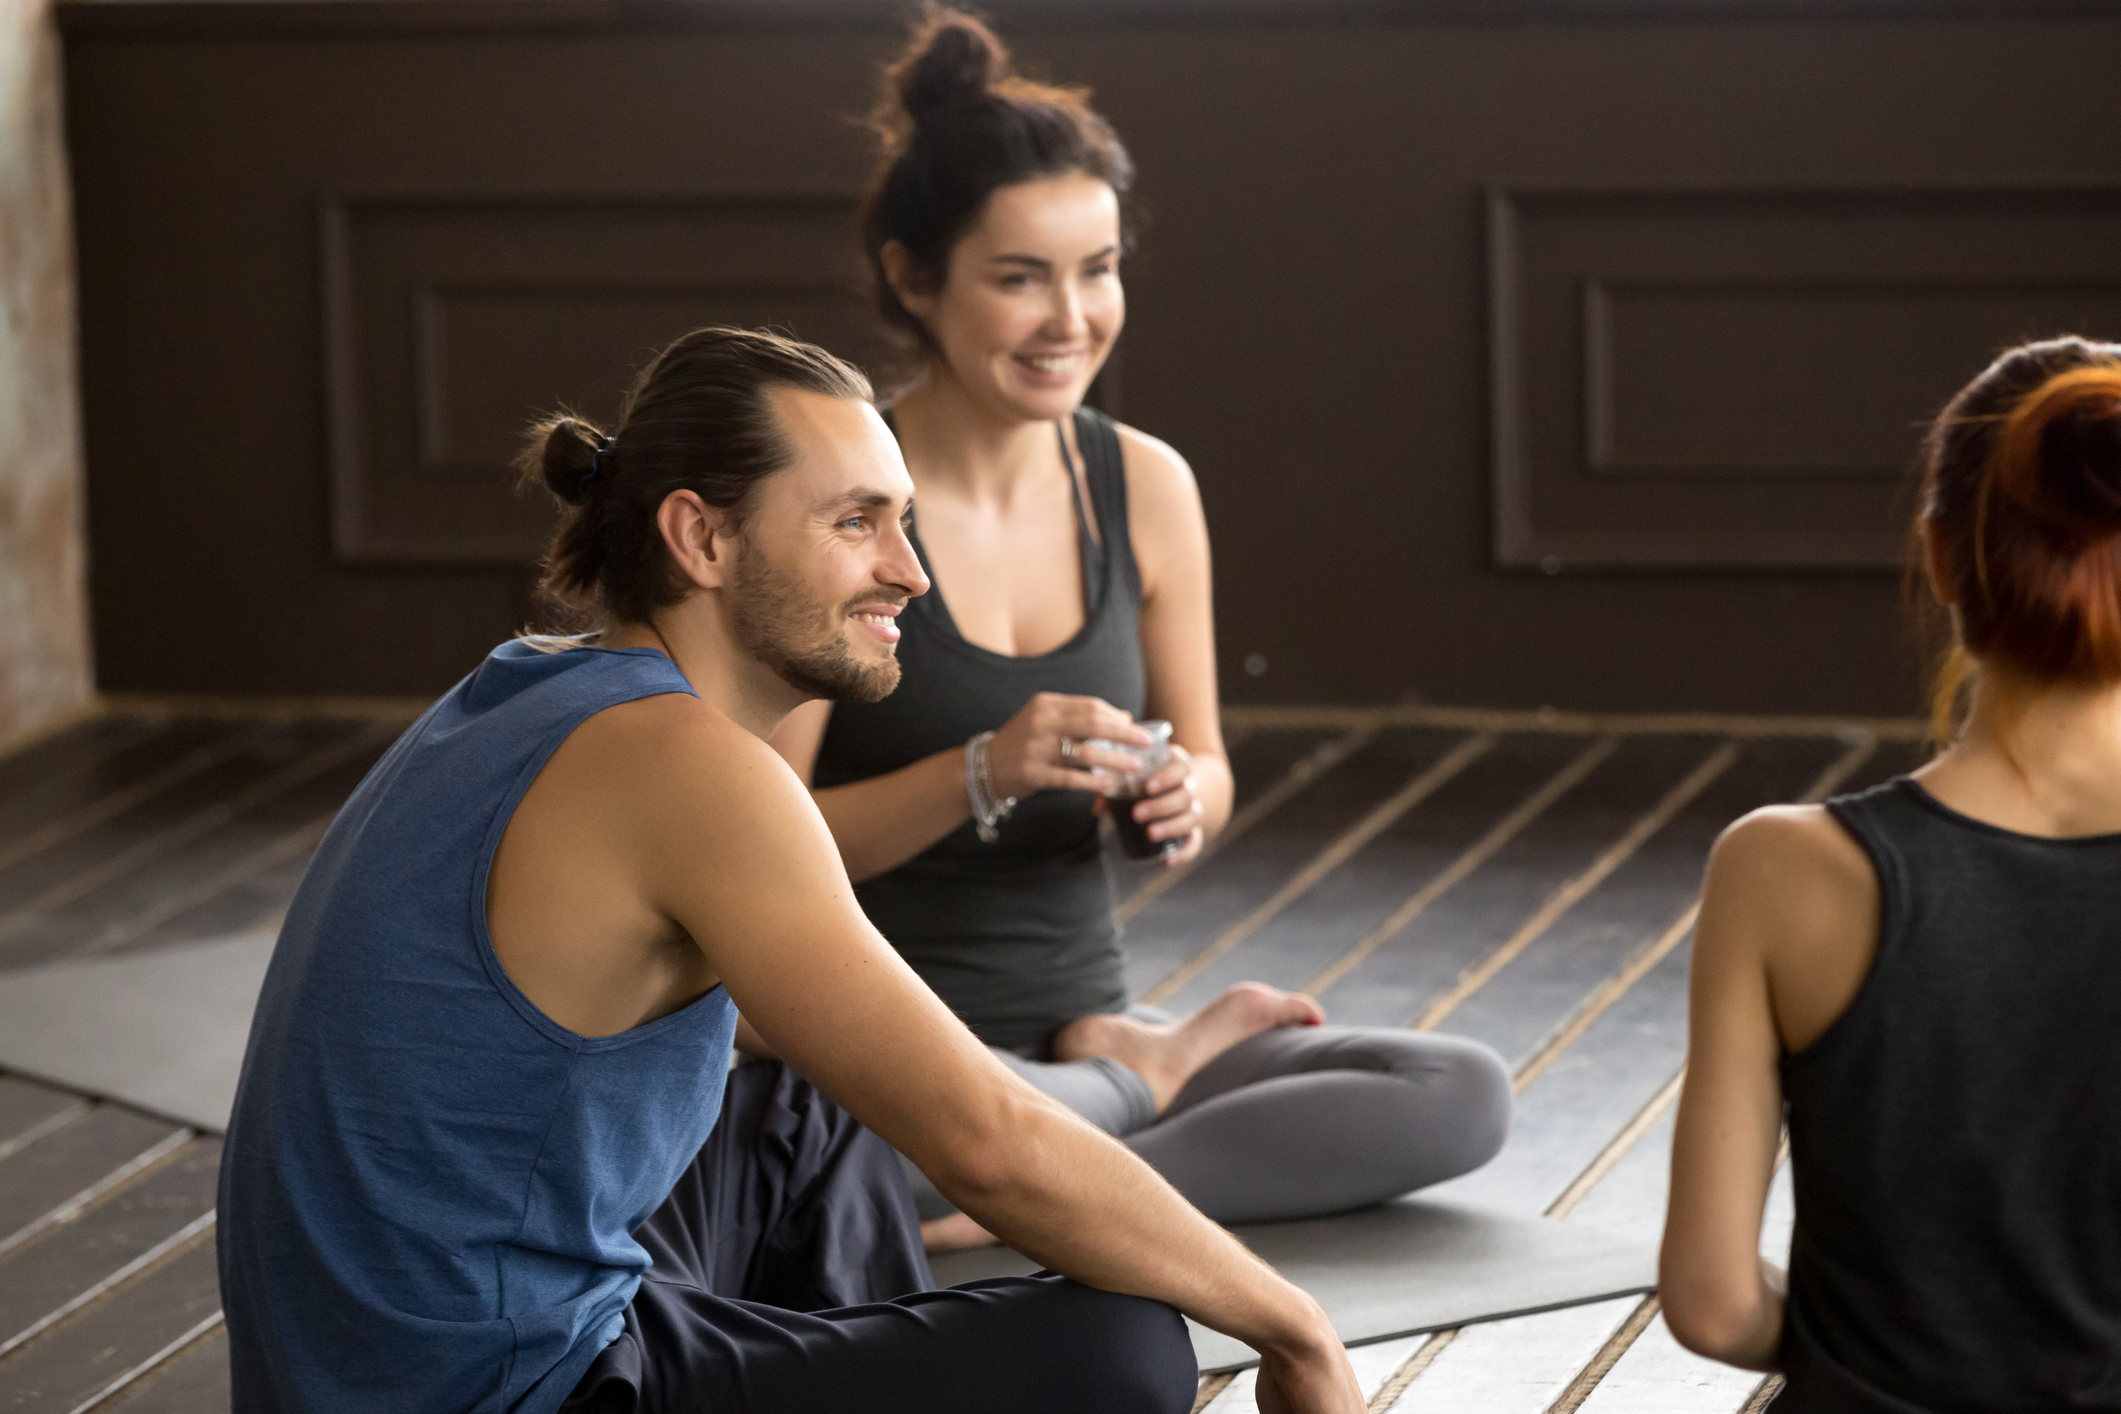 LEARN ABOUT OUR SAN FRANCISCO COU0PLES COUNSELING AND SEX THERAPY PROGRAMS